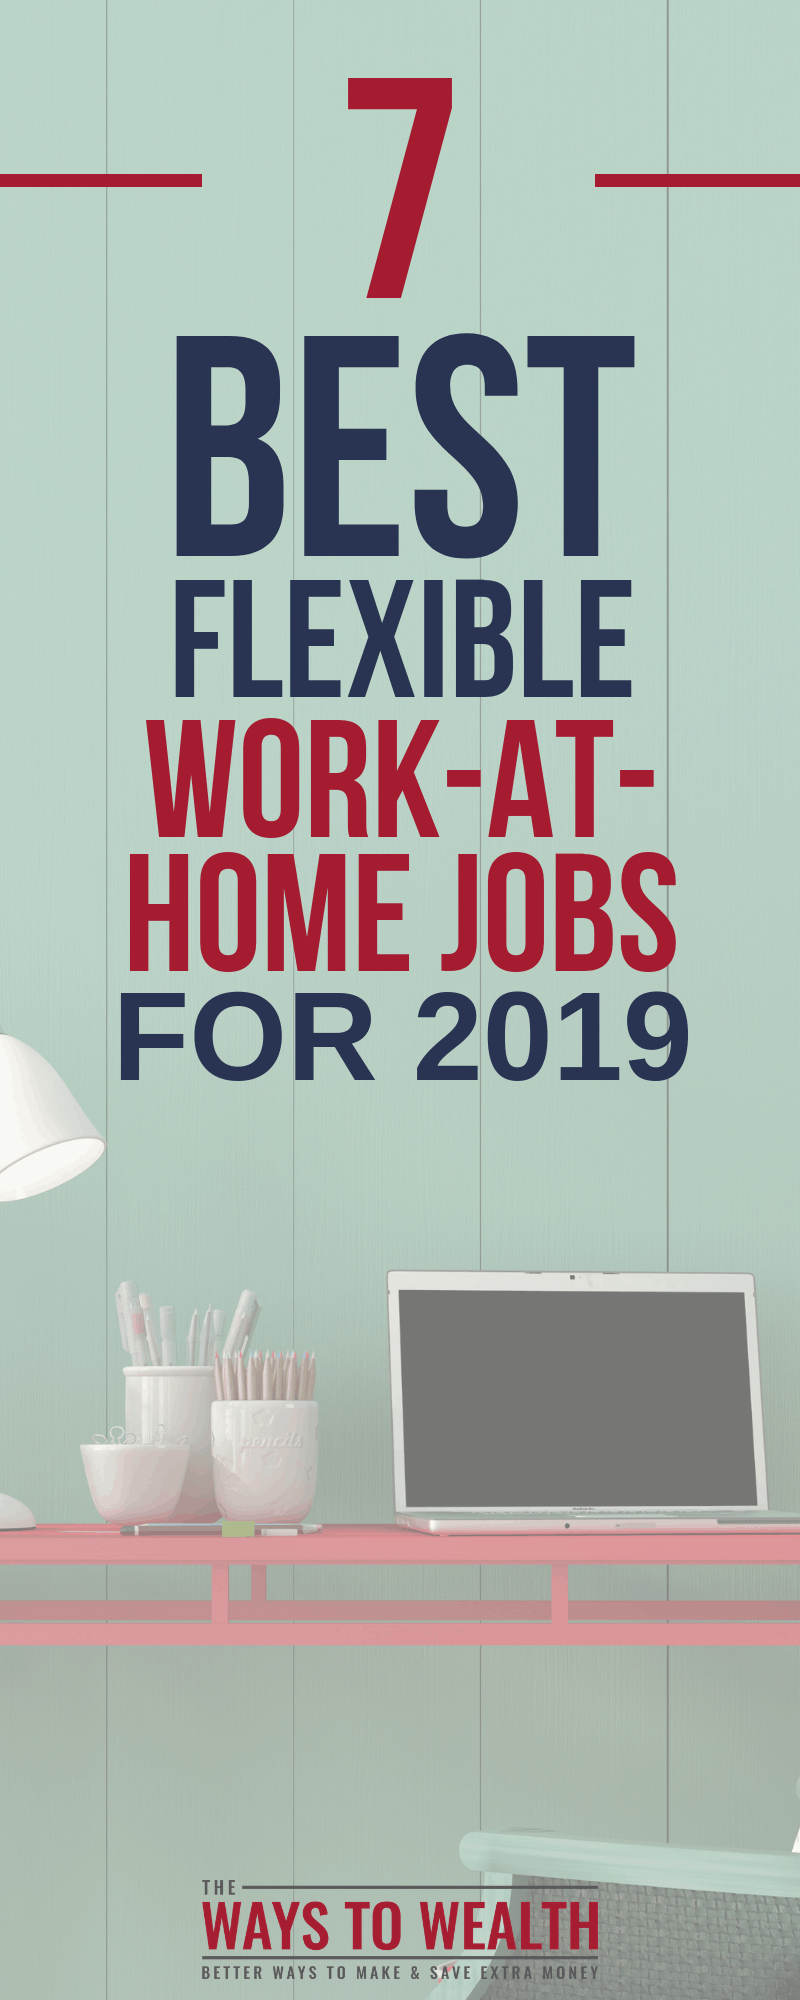 Check out this list of the 7 best flexible work from home jobs for 2019. See both part-time full-time jobs from home or online perfect for stay-at-home moms and anyone who likes a flexible schedule.#wahm #sidehustle #makemoneyonline #workfromhome